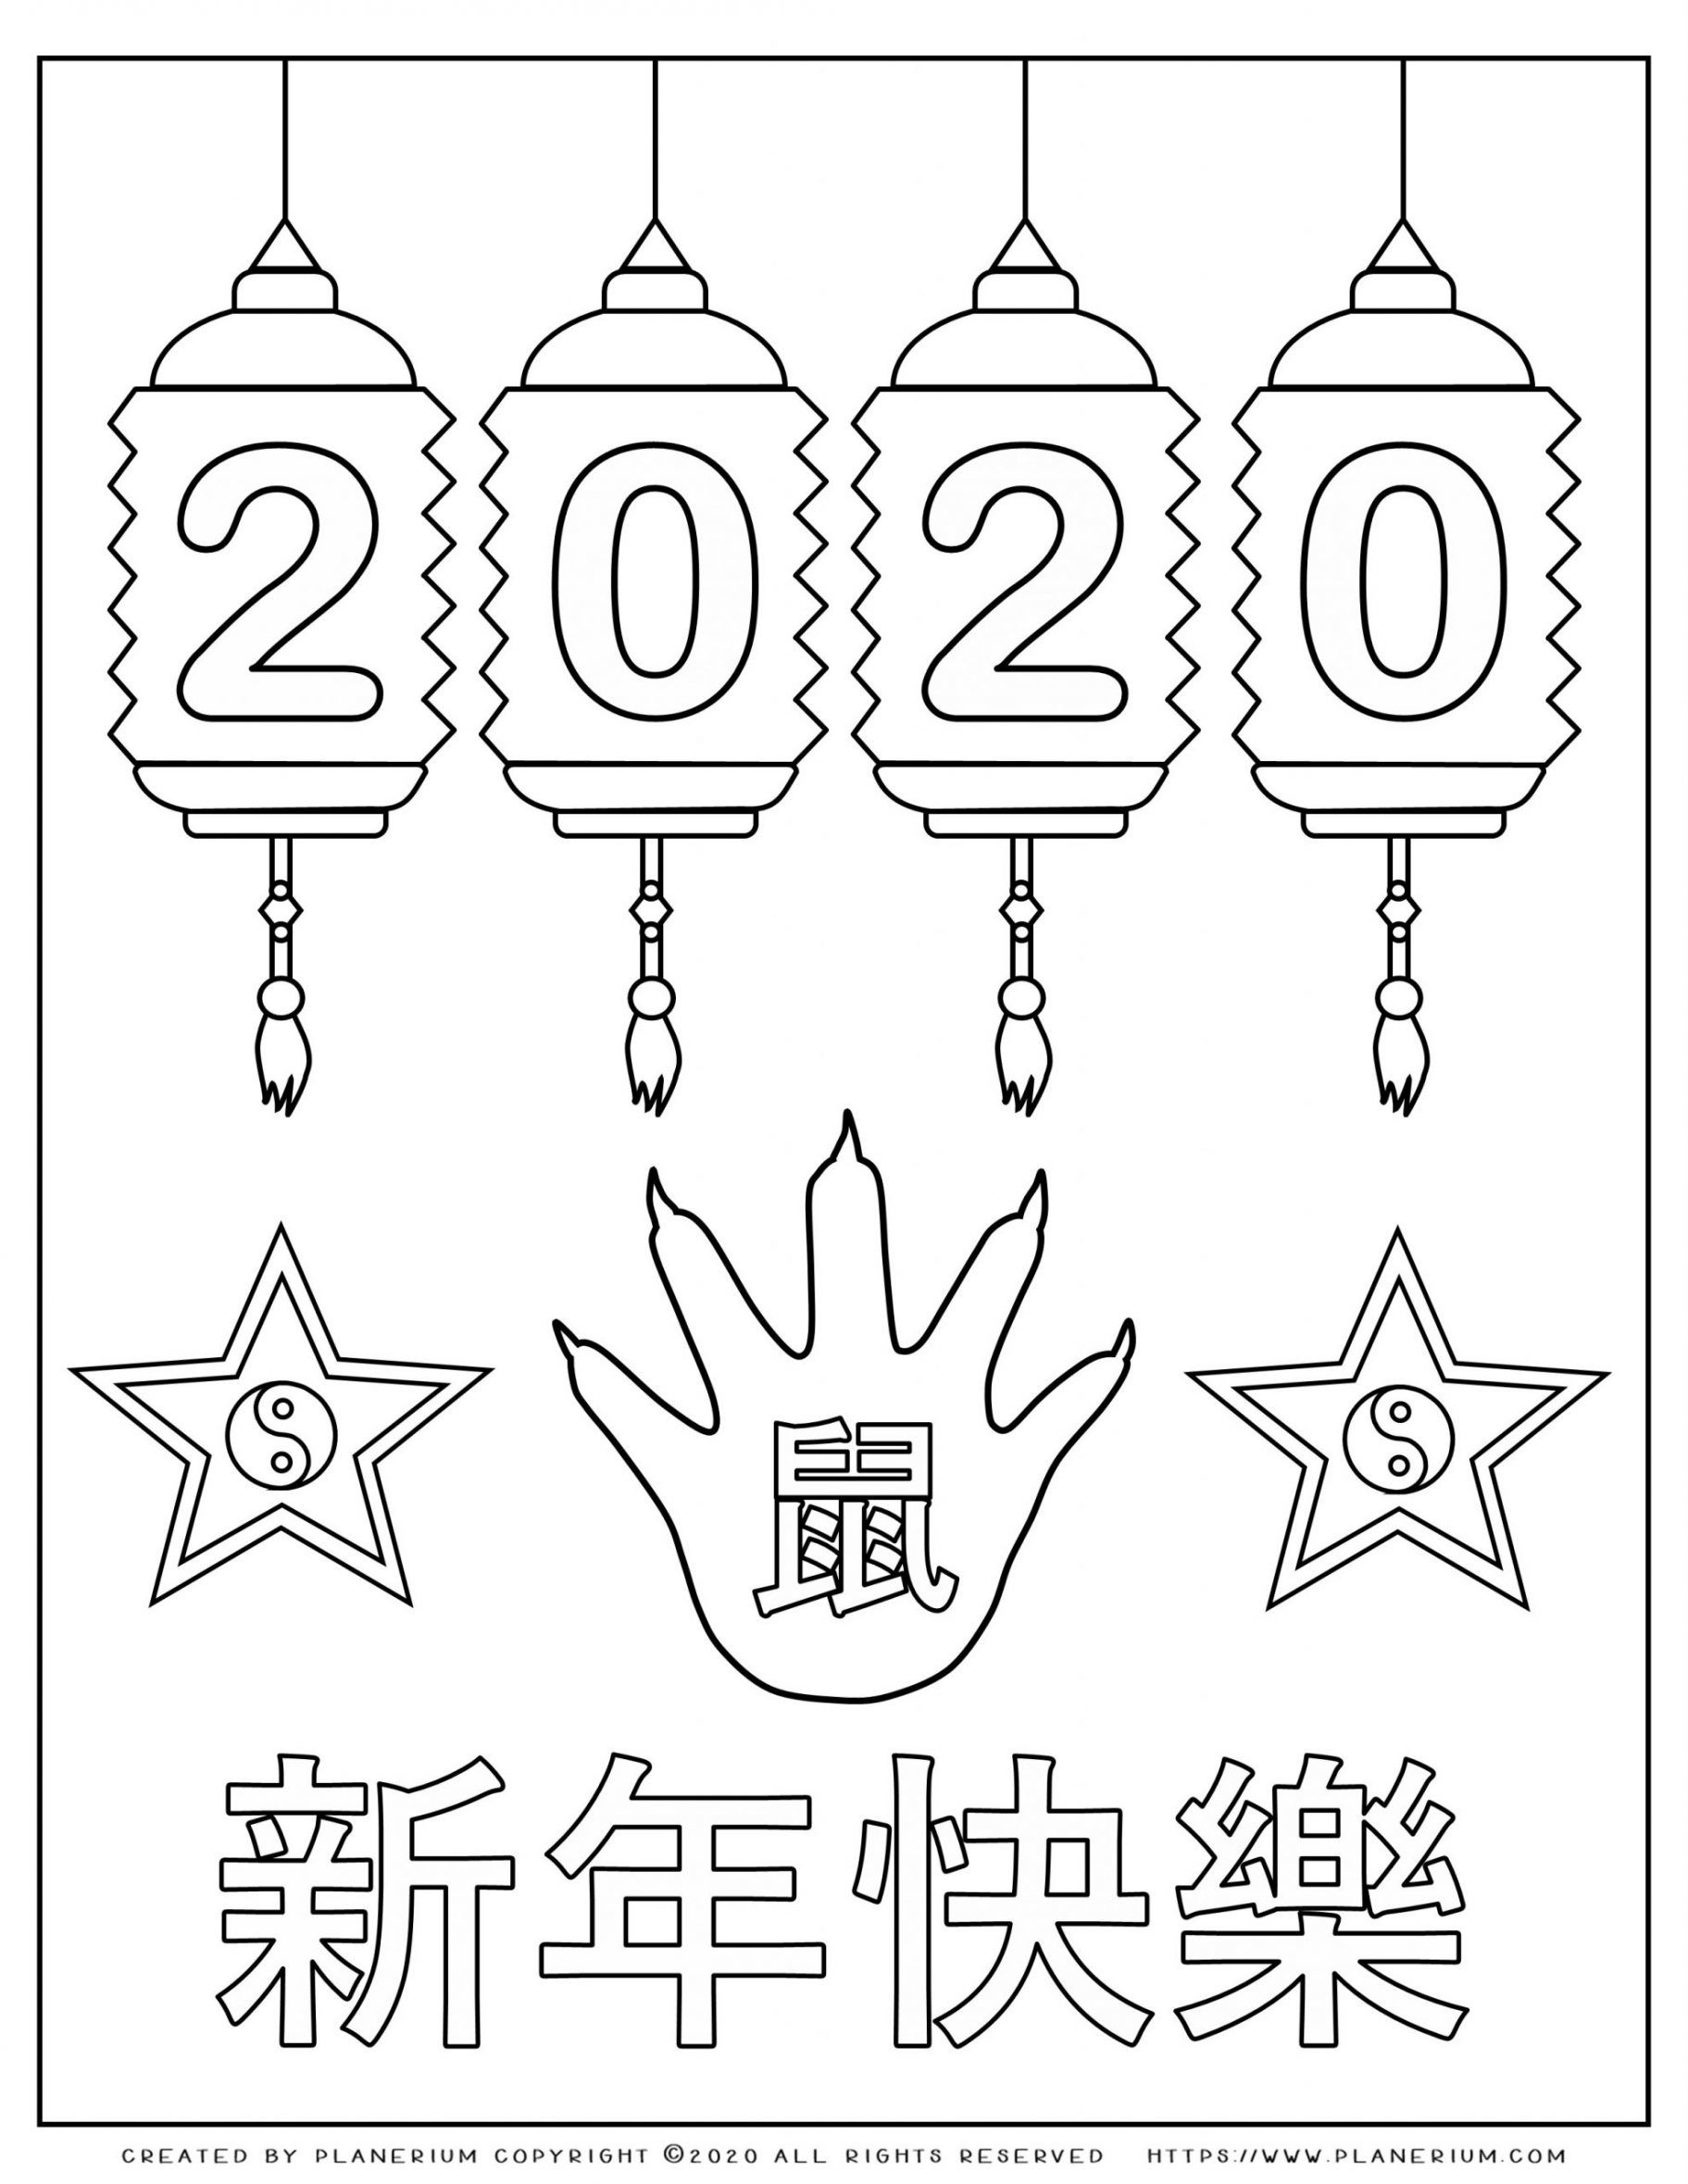 Lunar New Year Chinese Year of the Rat 2020 - Coloring Page - Lights   Planerium